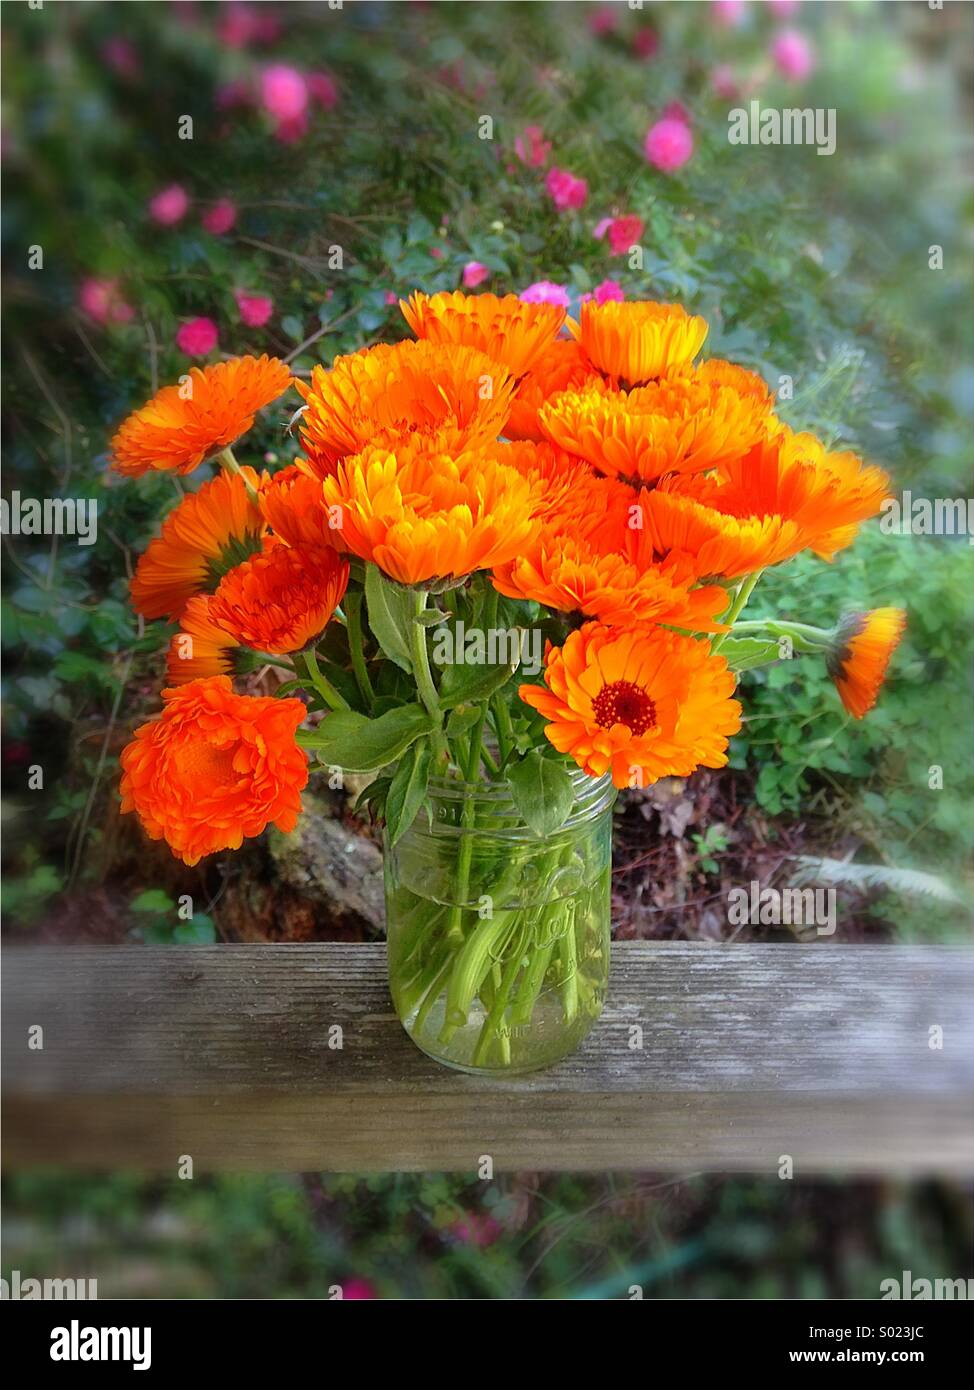 a bunch of pretty orange flowers in a vase stock photo, royalty, Beautiful flower